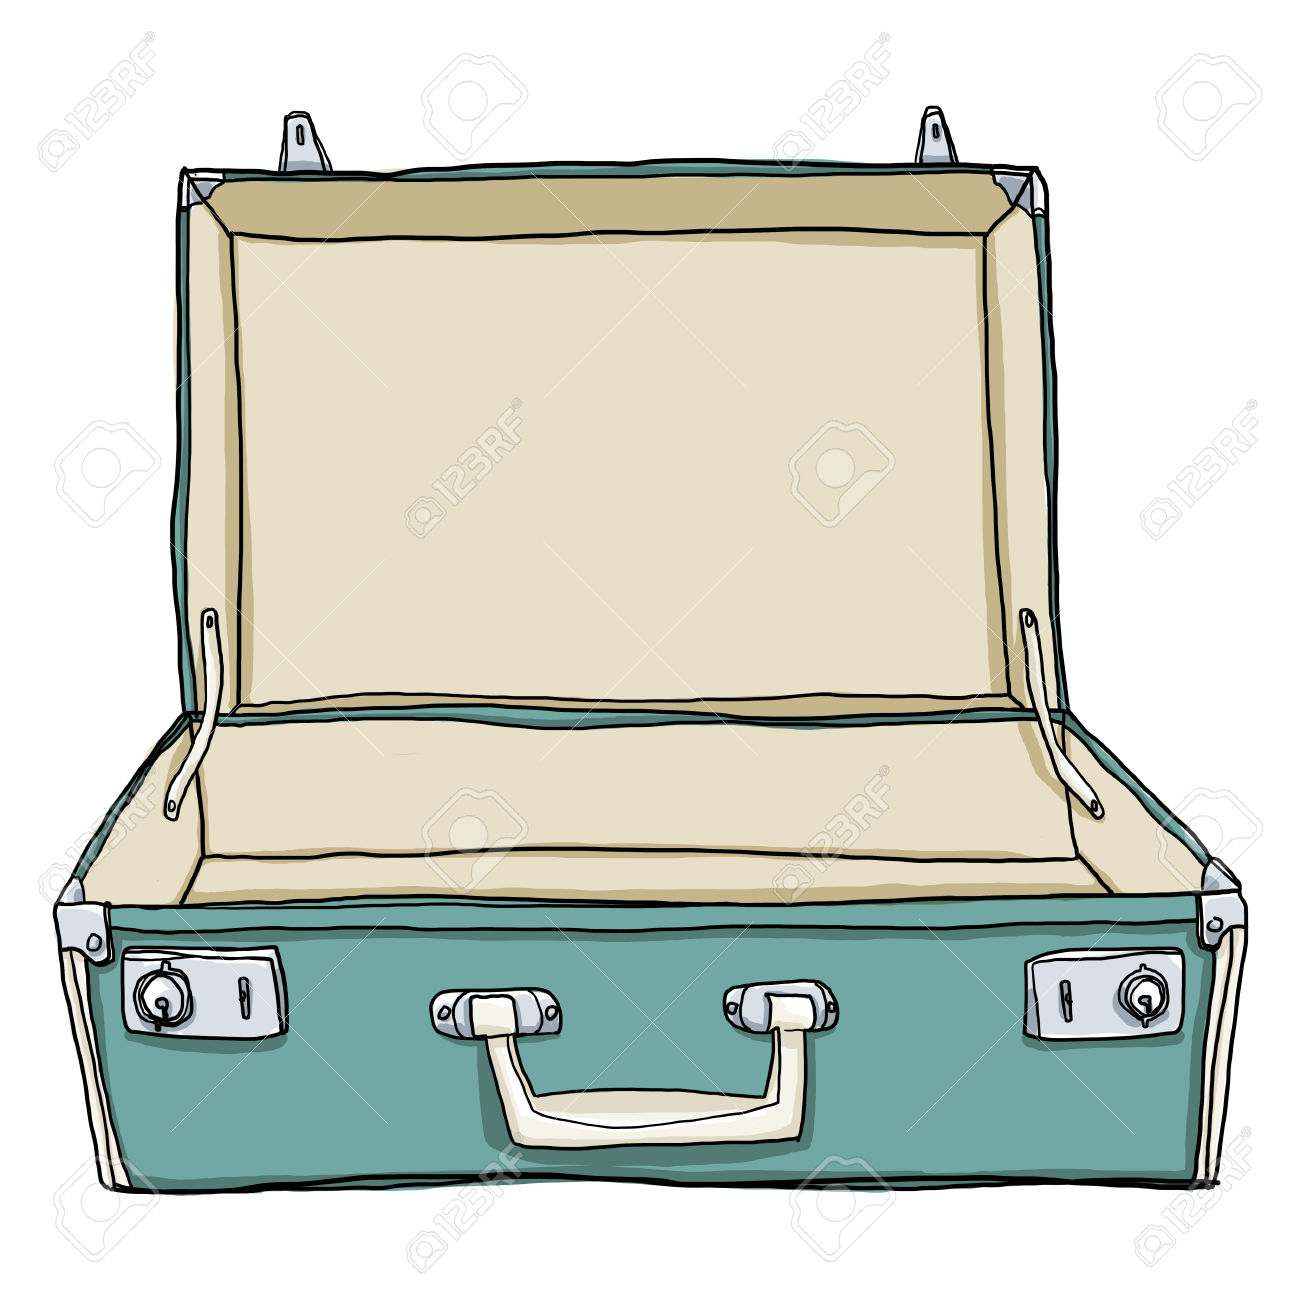 suitcase coloring page clipart free download best suitcase